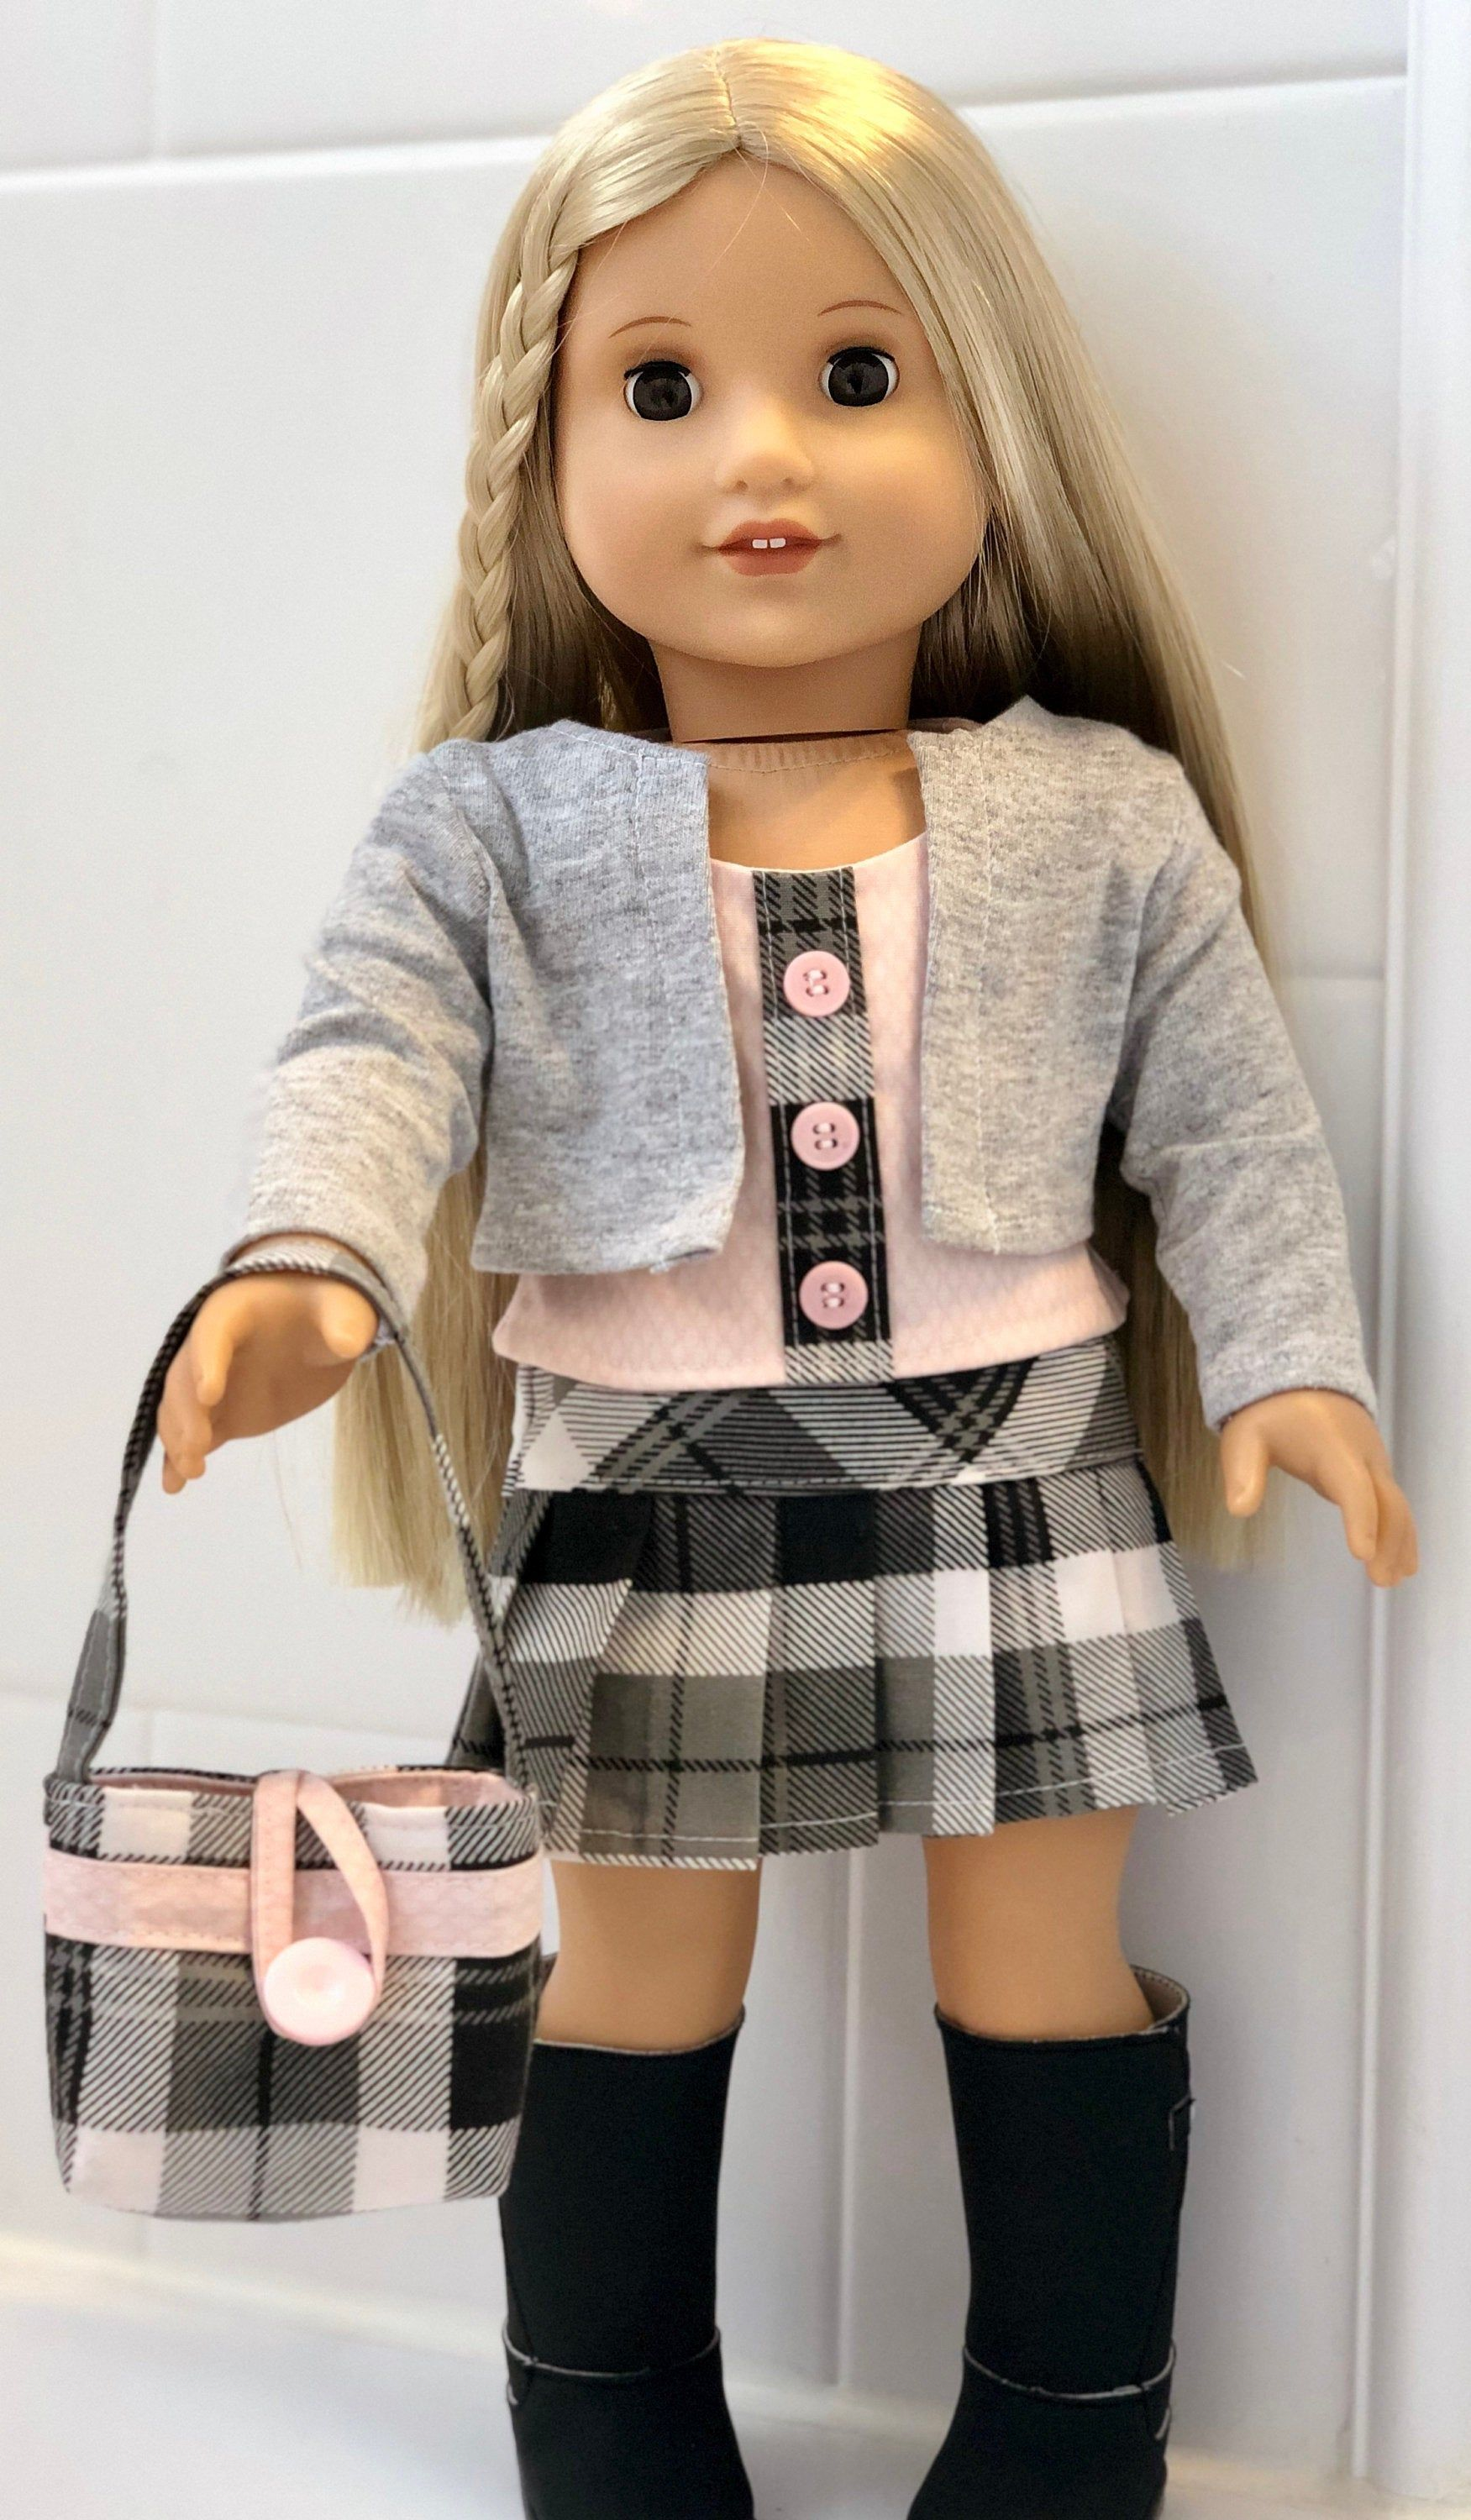 Sweet School Skirt, Top, Cardigan, and Purse! Soft Pink and Plaid with Pleats for 18 Dolls Such as American Girl #dollies